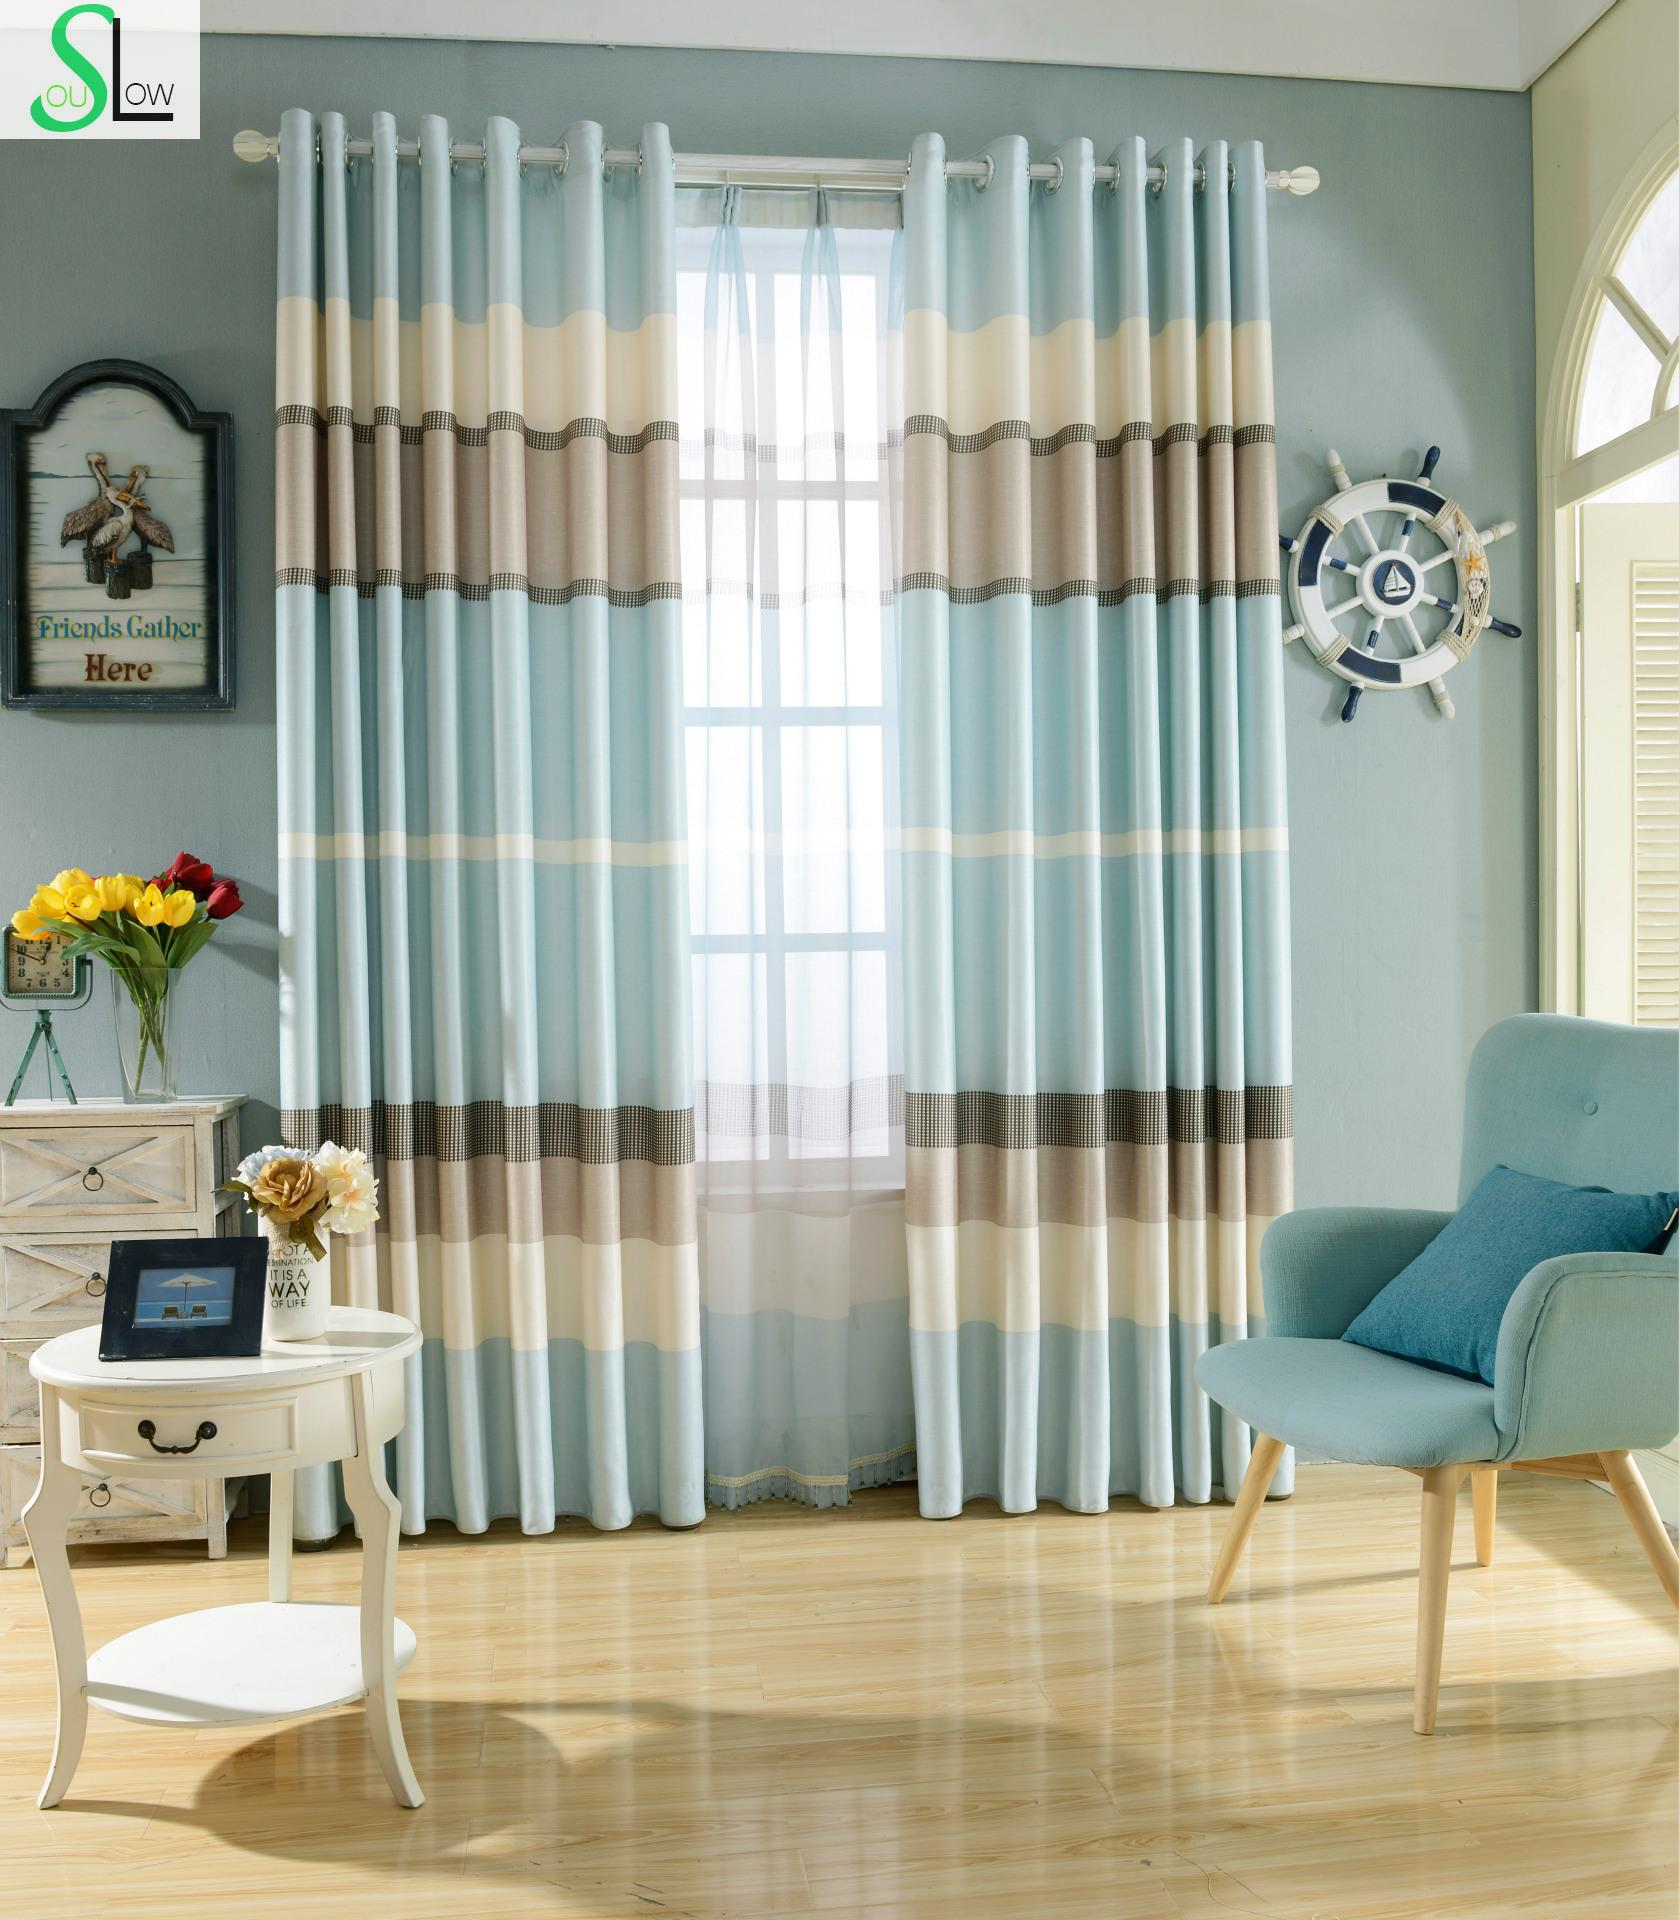 Huayin Velvet Linen Curtains Tulle Window Curtain For: Slow Soul New Simple Velvet And Linen Cloth Shade Curtain